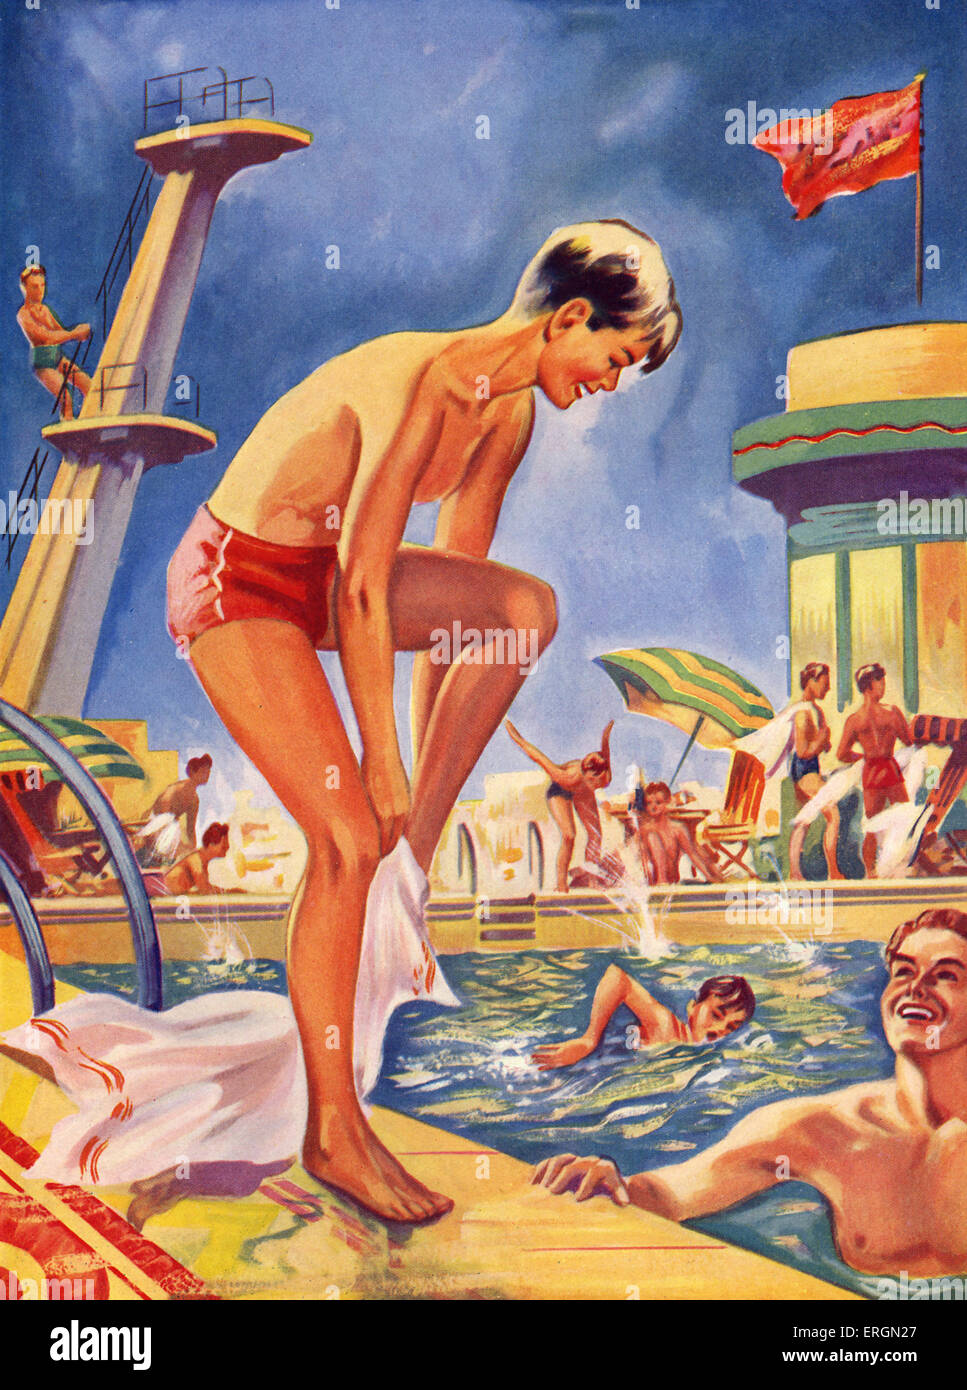 Lido swimming pool 1930s Illsutration from late 1930s, artist not known, from Wonder Book series - Stock Image